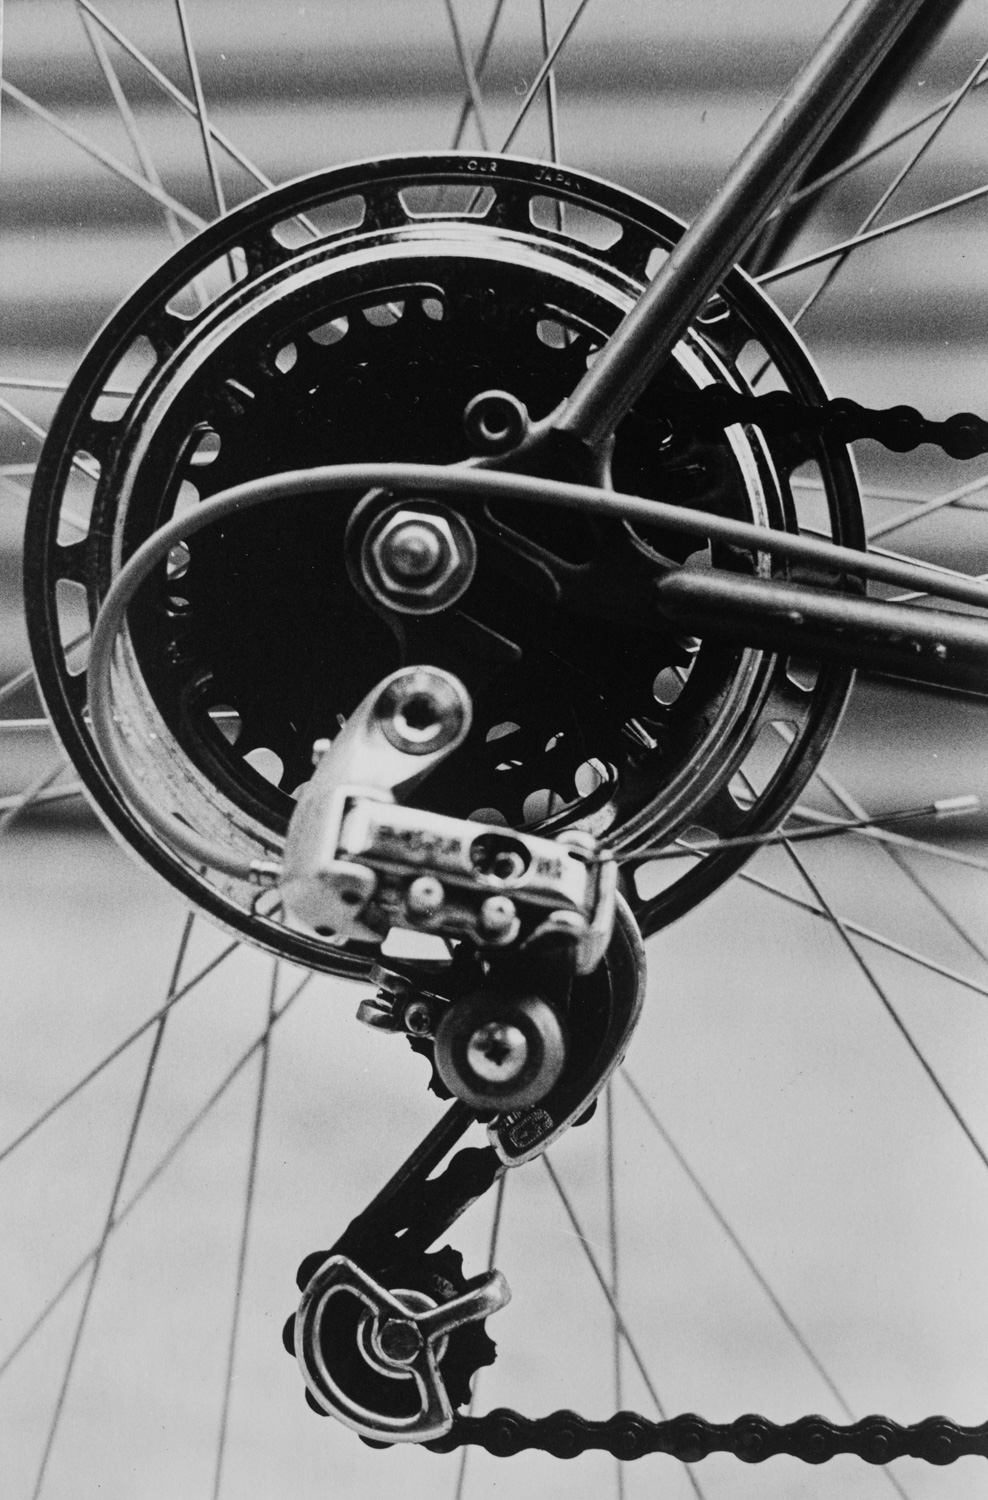 how to photograph ordinary things - bicyle wheel cog and chain